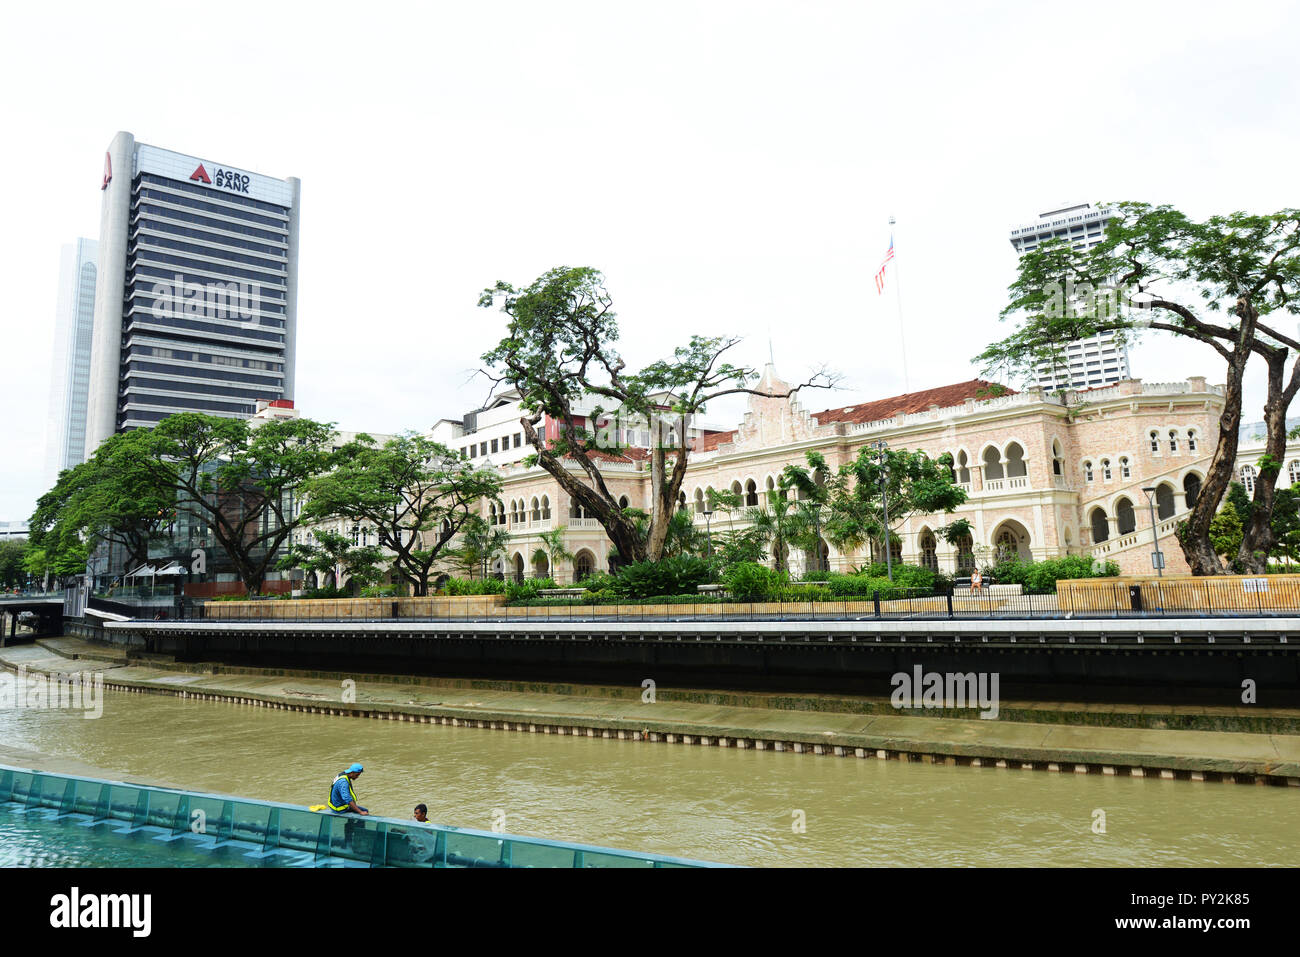 Old British colonial buildings along the Klang river in KL, Malaysia. - Stock Image